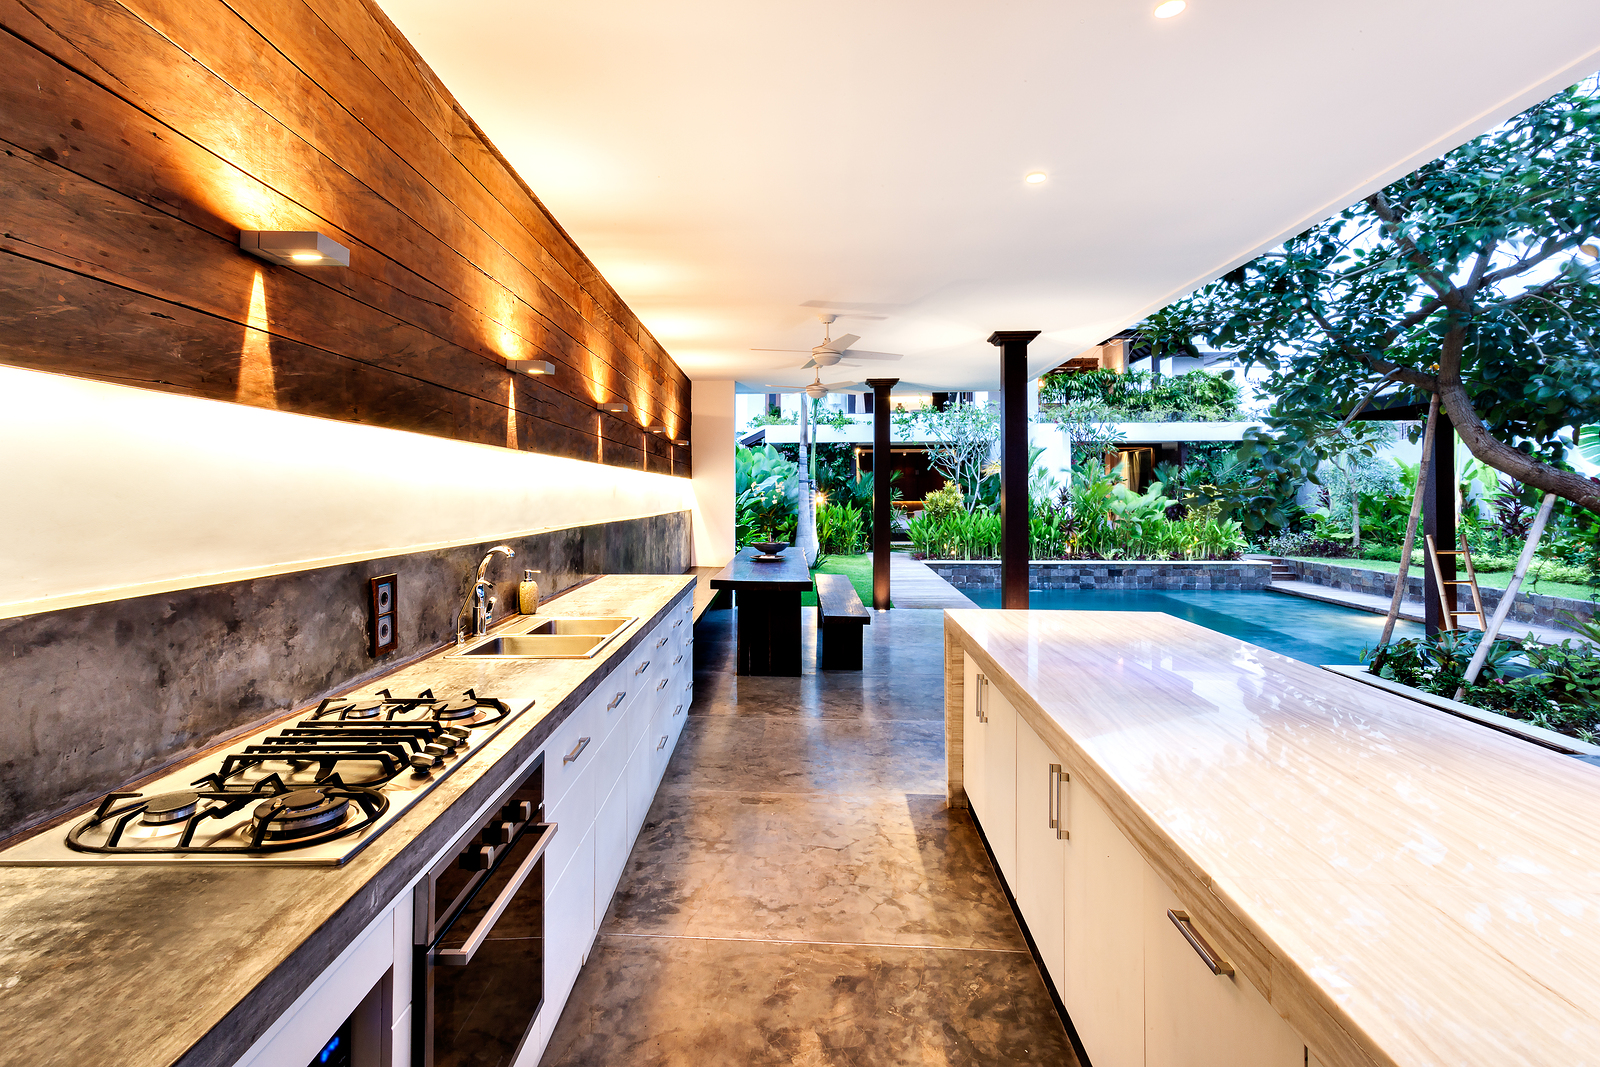 bigstock-Outdoor-Kitchen-With-A-Stove-A-135341219.jpg